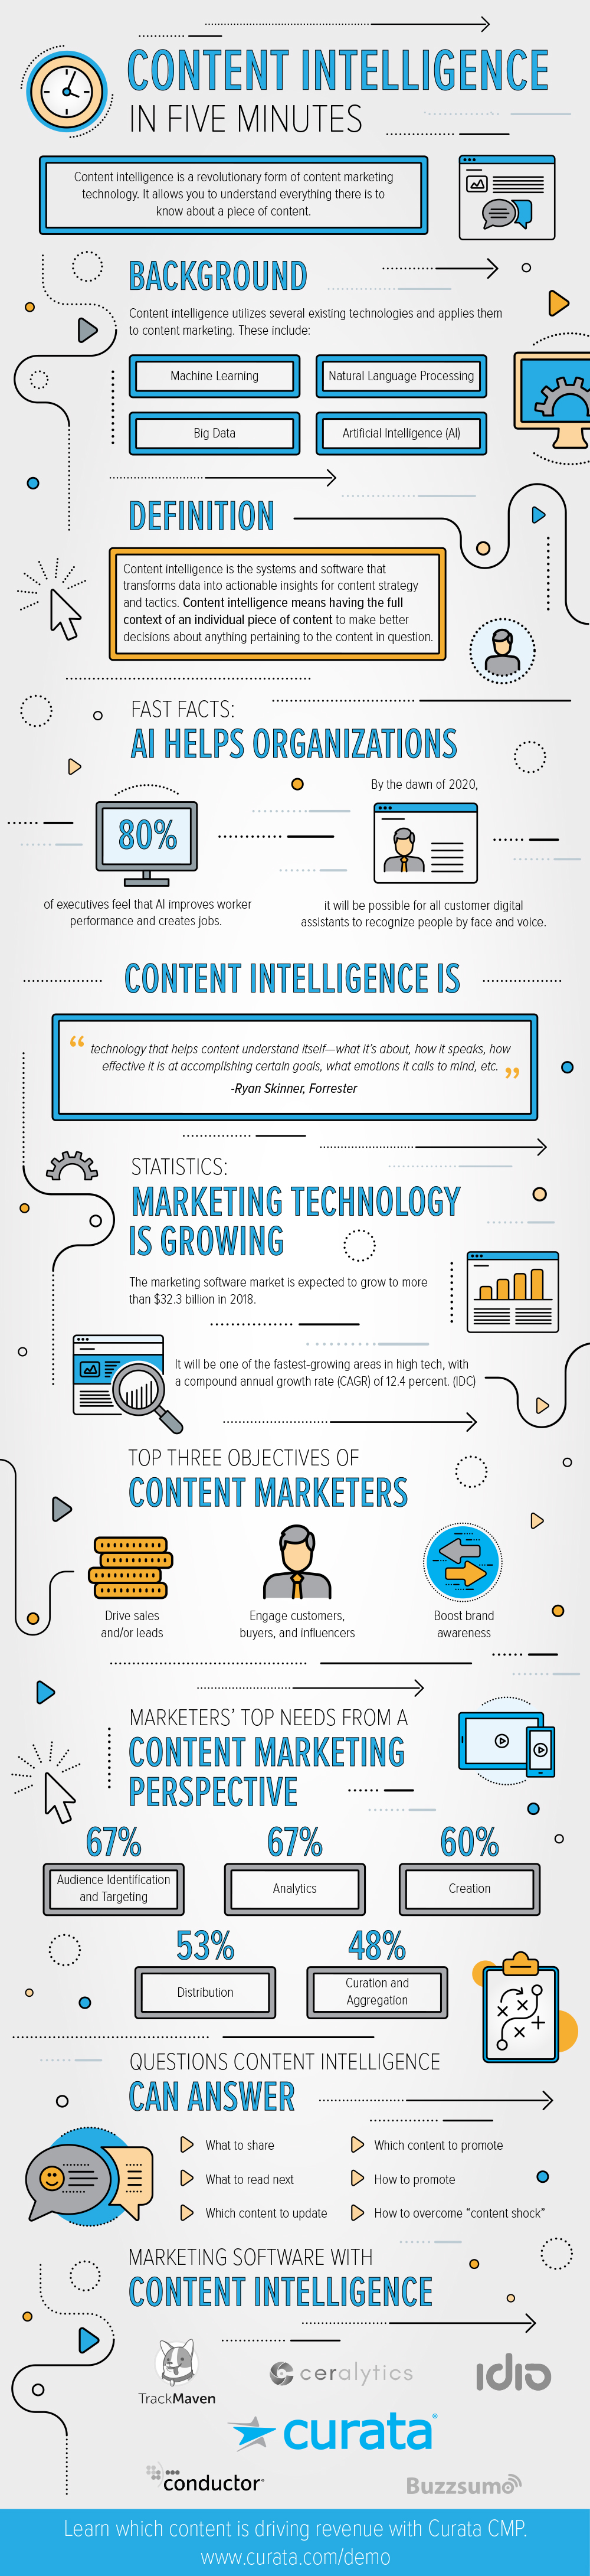 content intelligence infographic